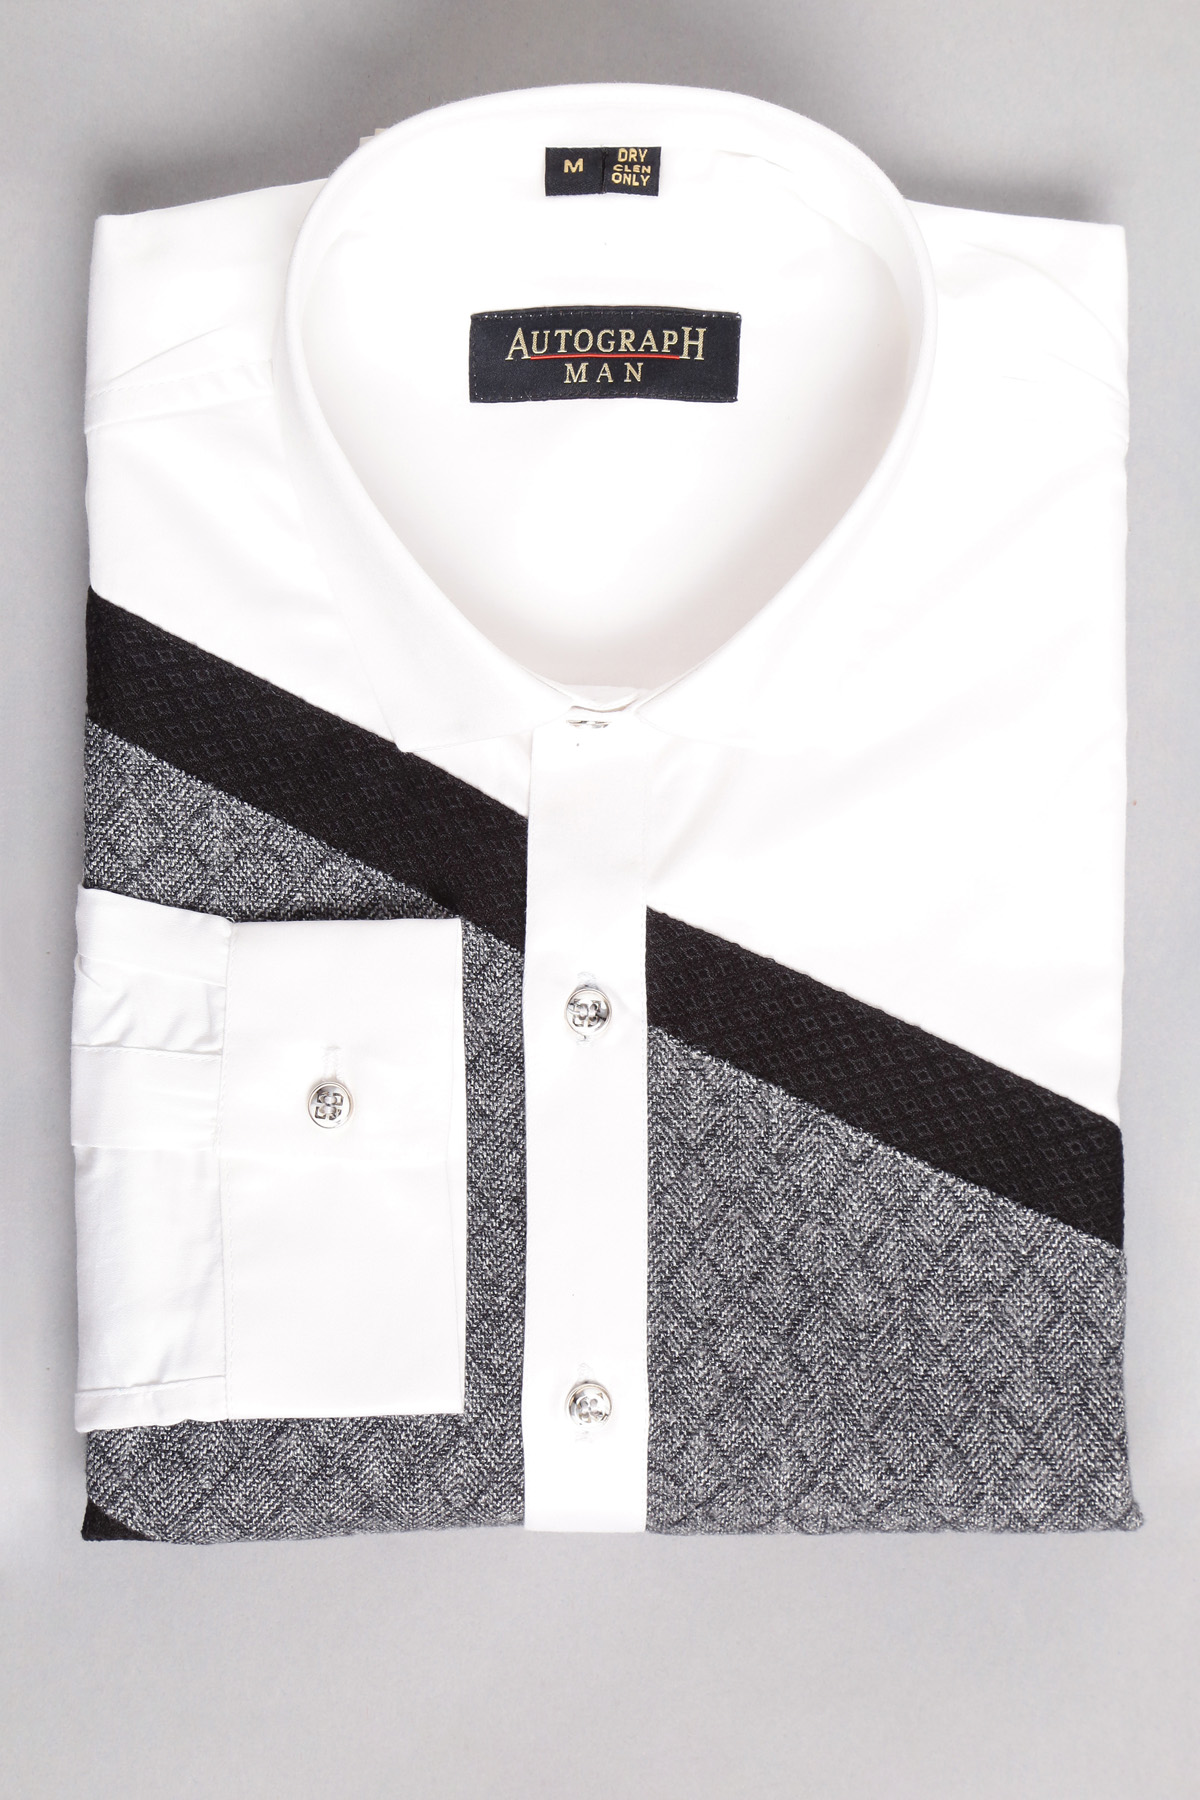 Bali night shirt